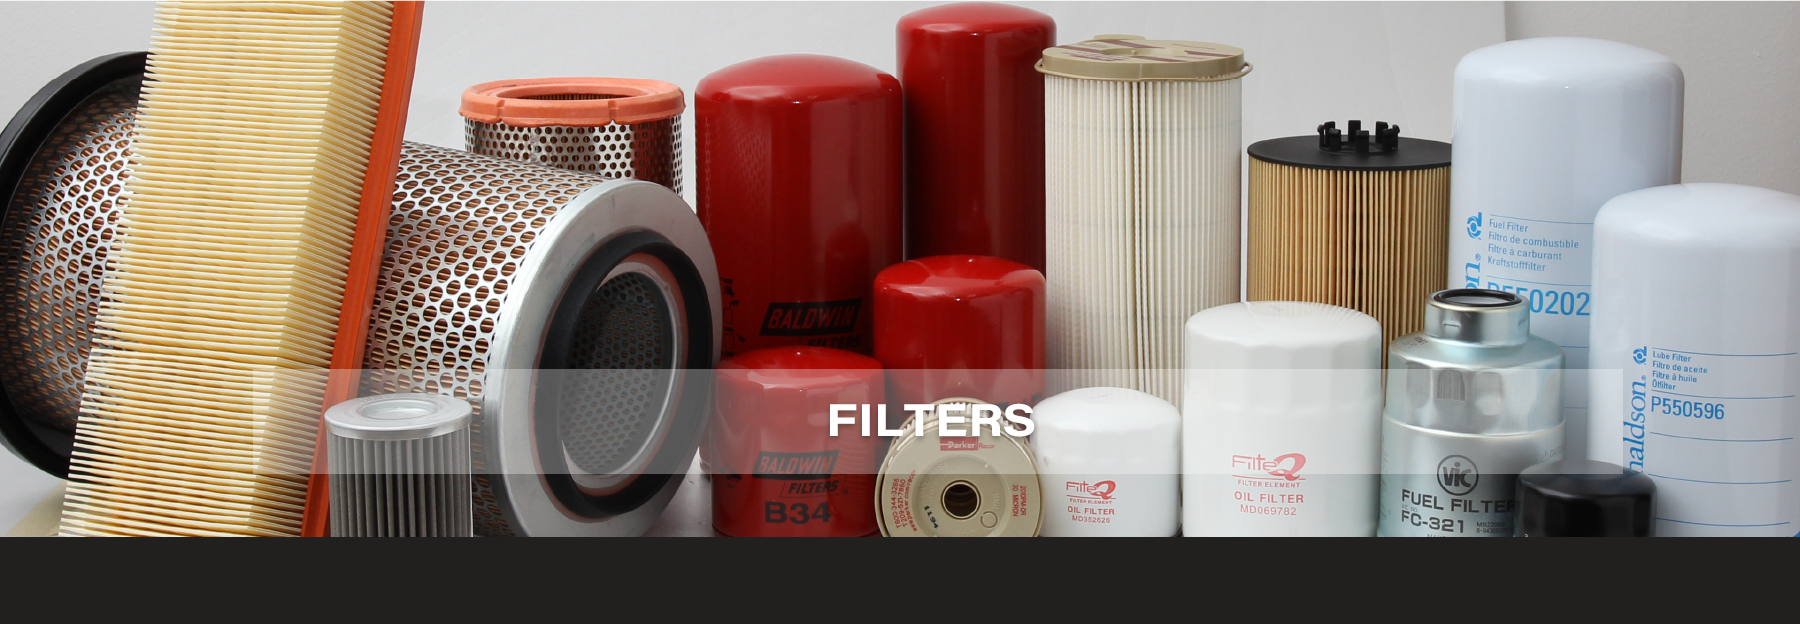 products_filters_banner (1)